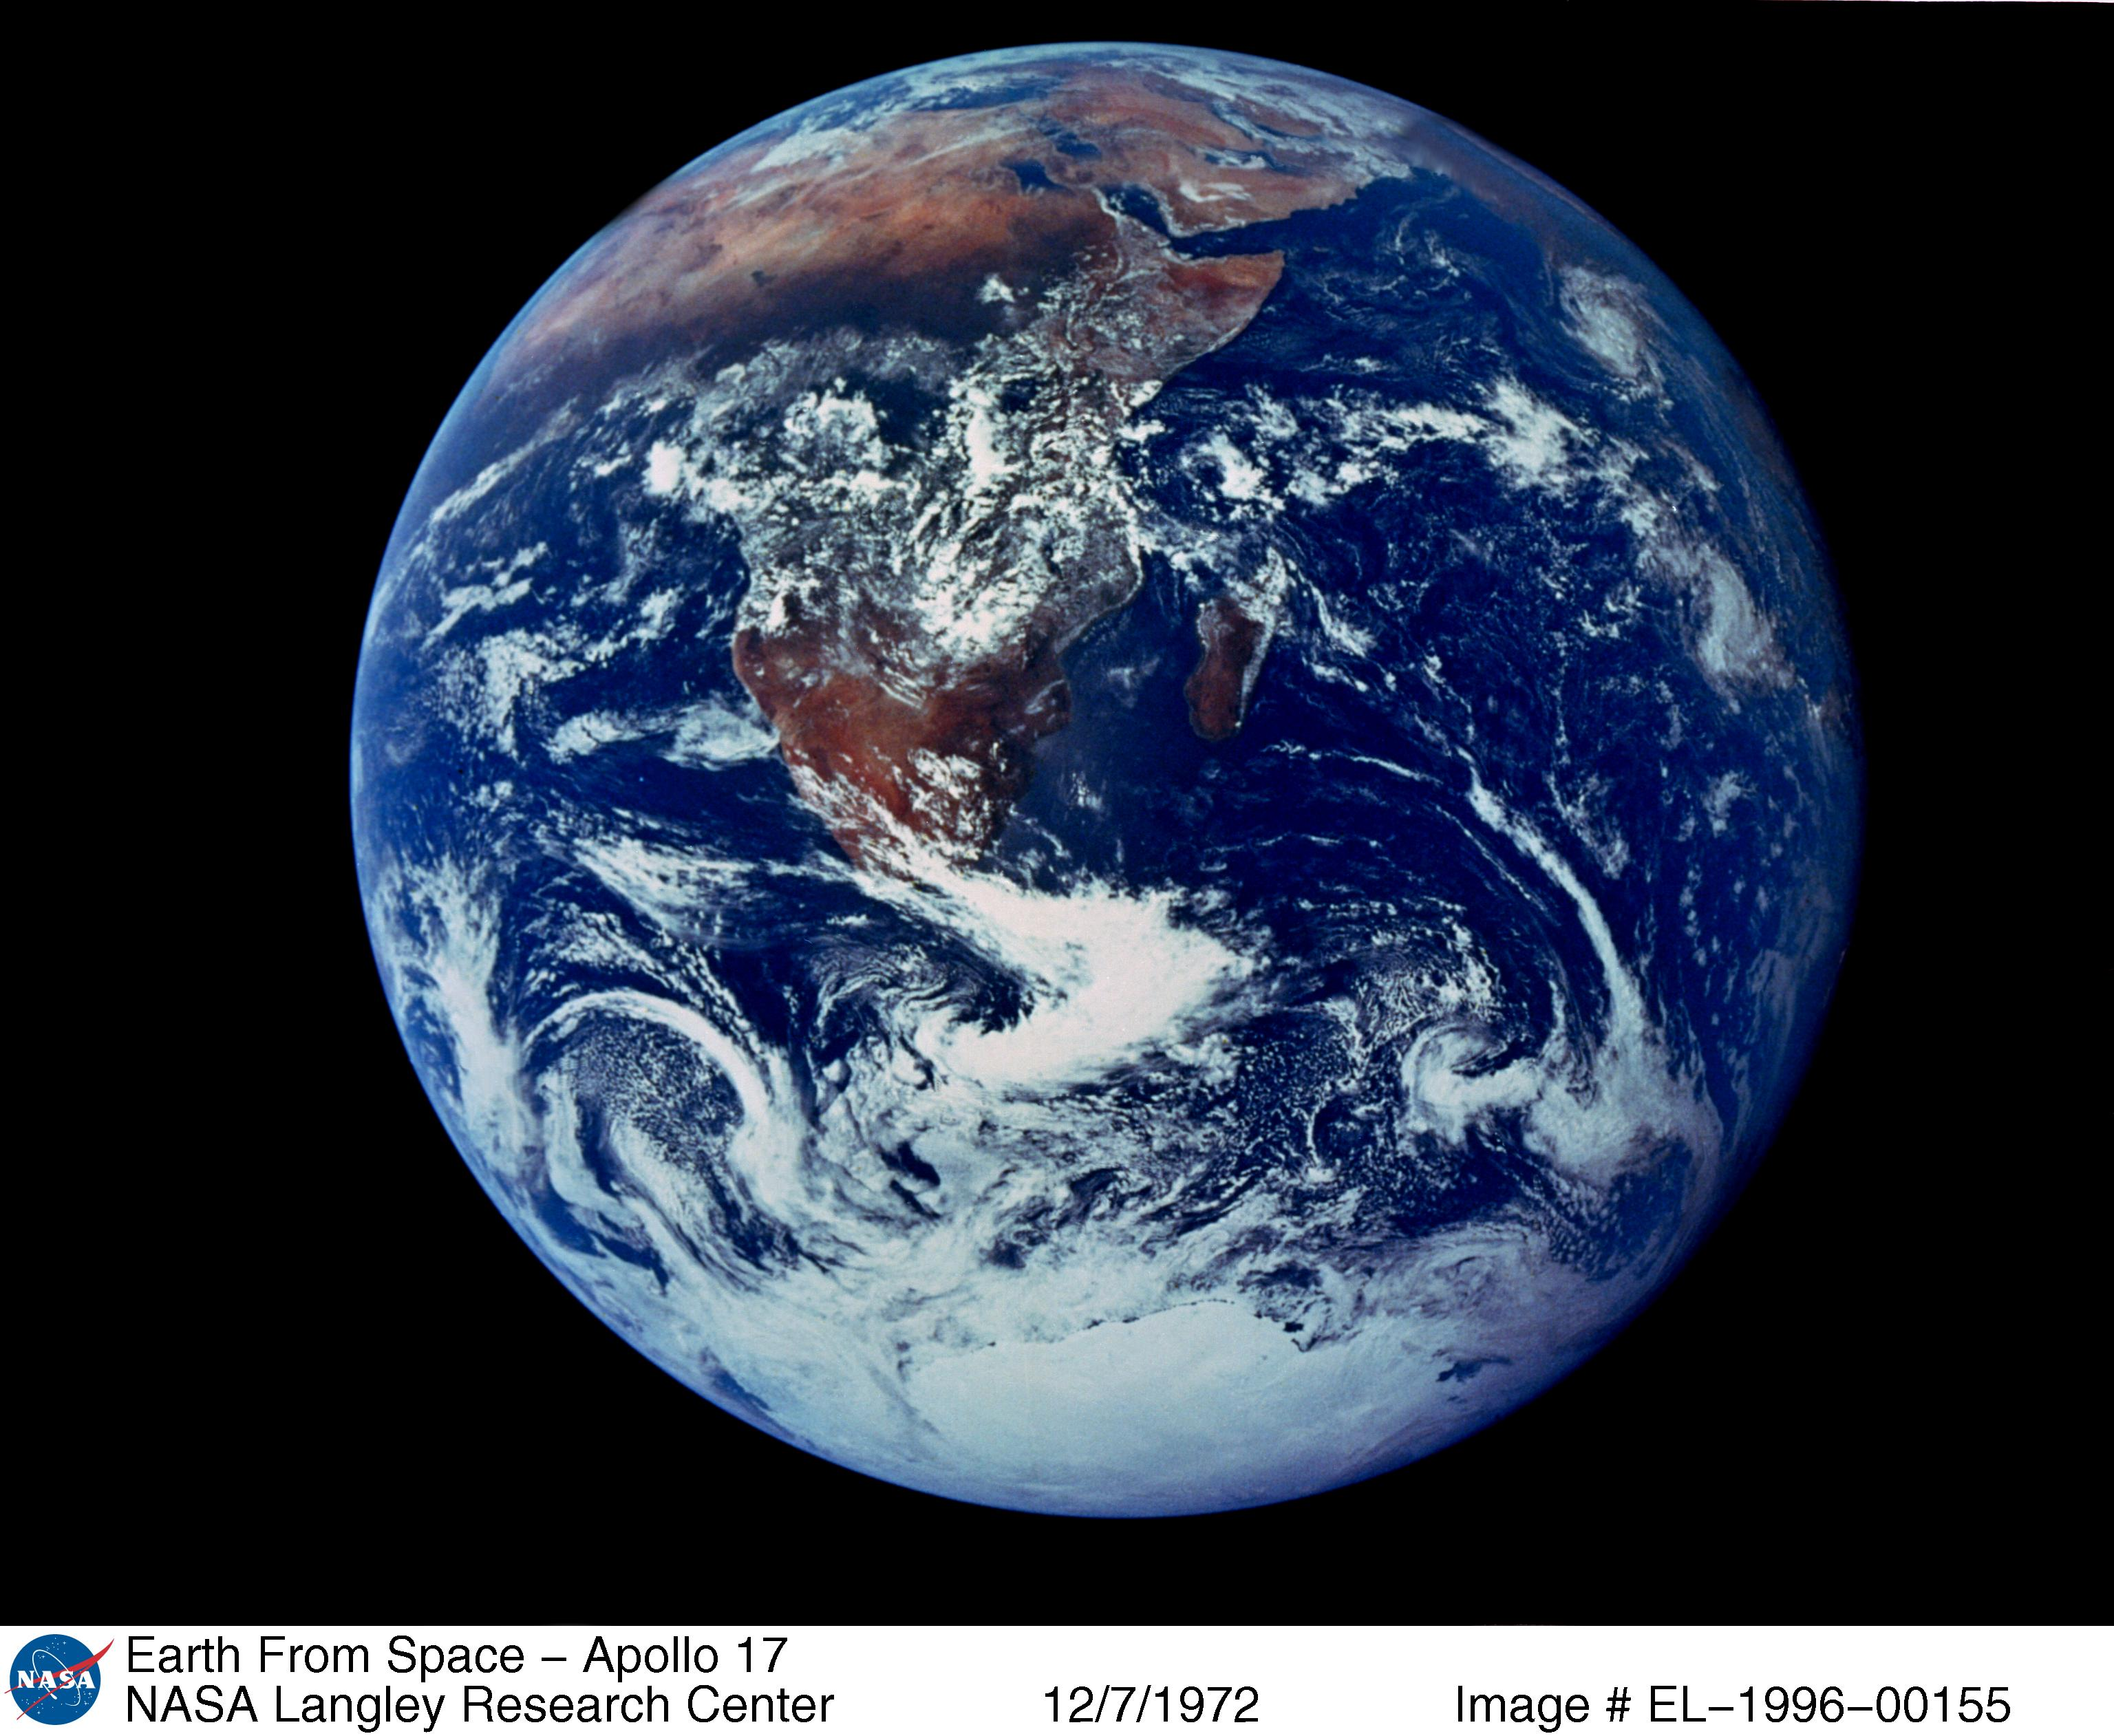 Apollo_17_Image_Of_Earth_From_Space.jpeg